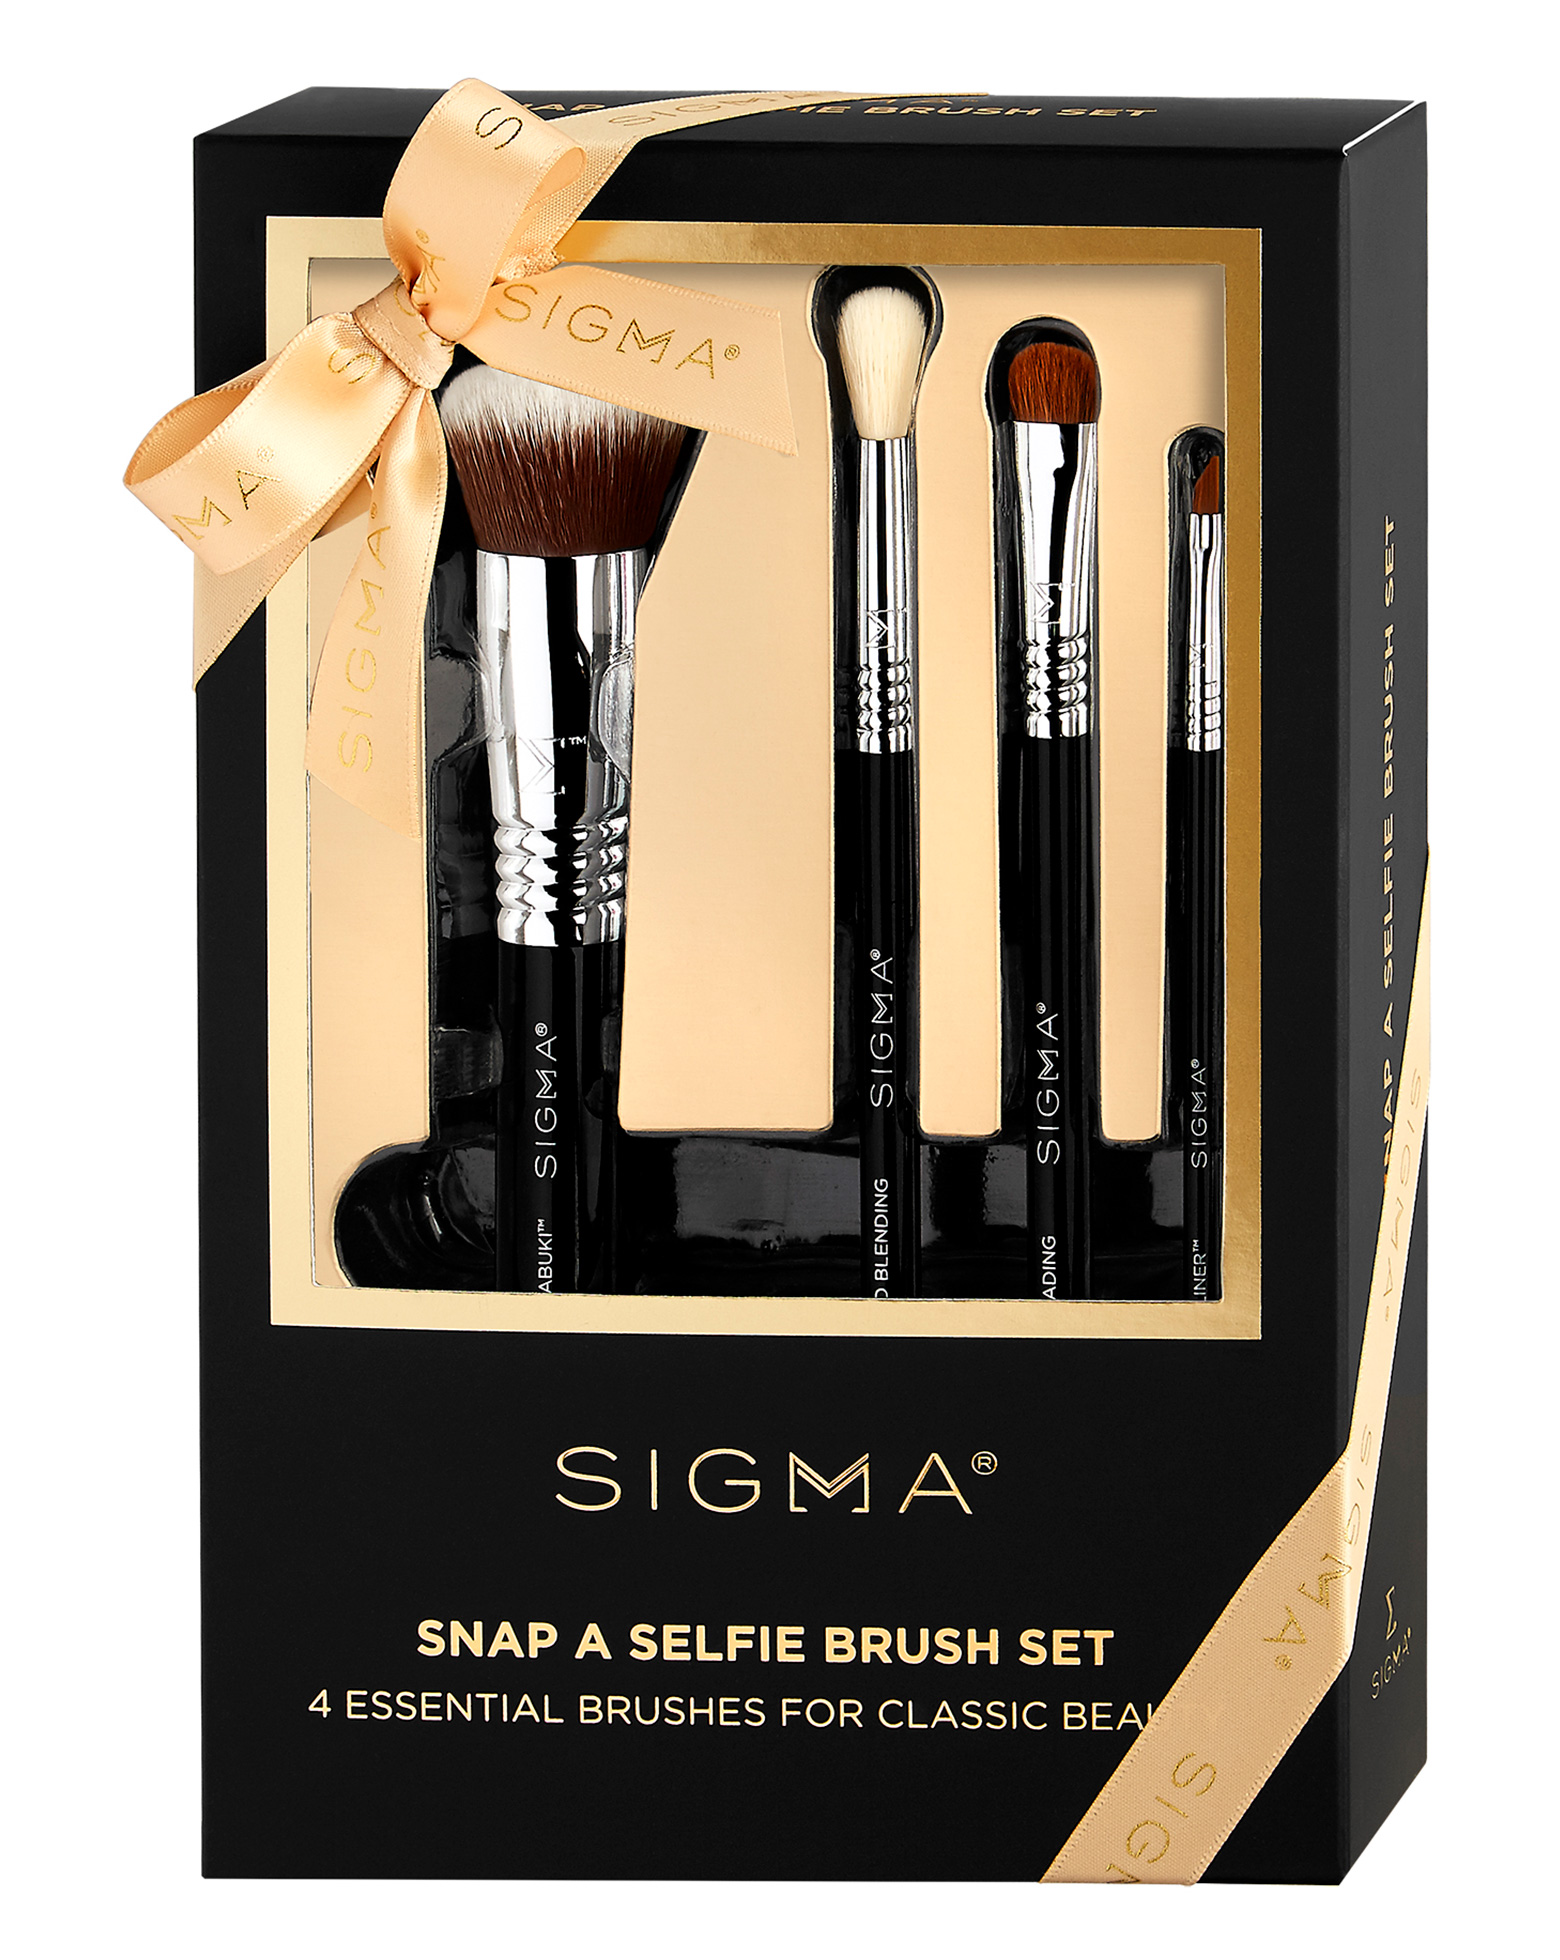 7 Gorgeous Sigma Beauty Gifts for Christmas 2015